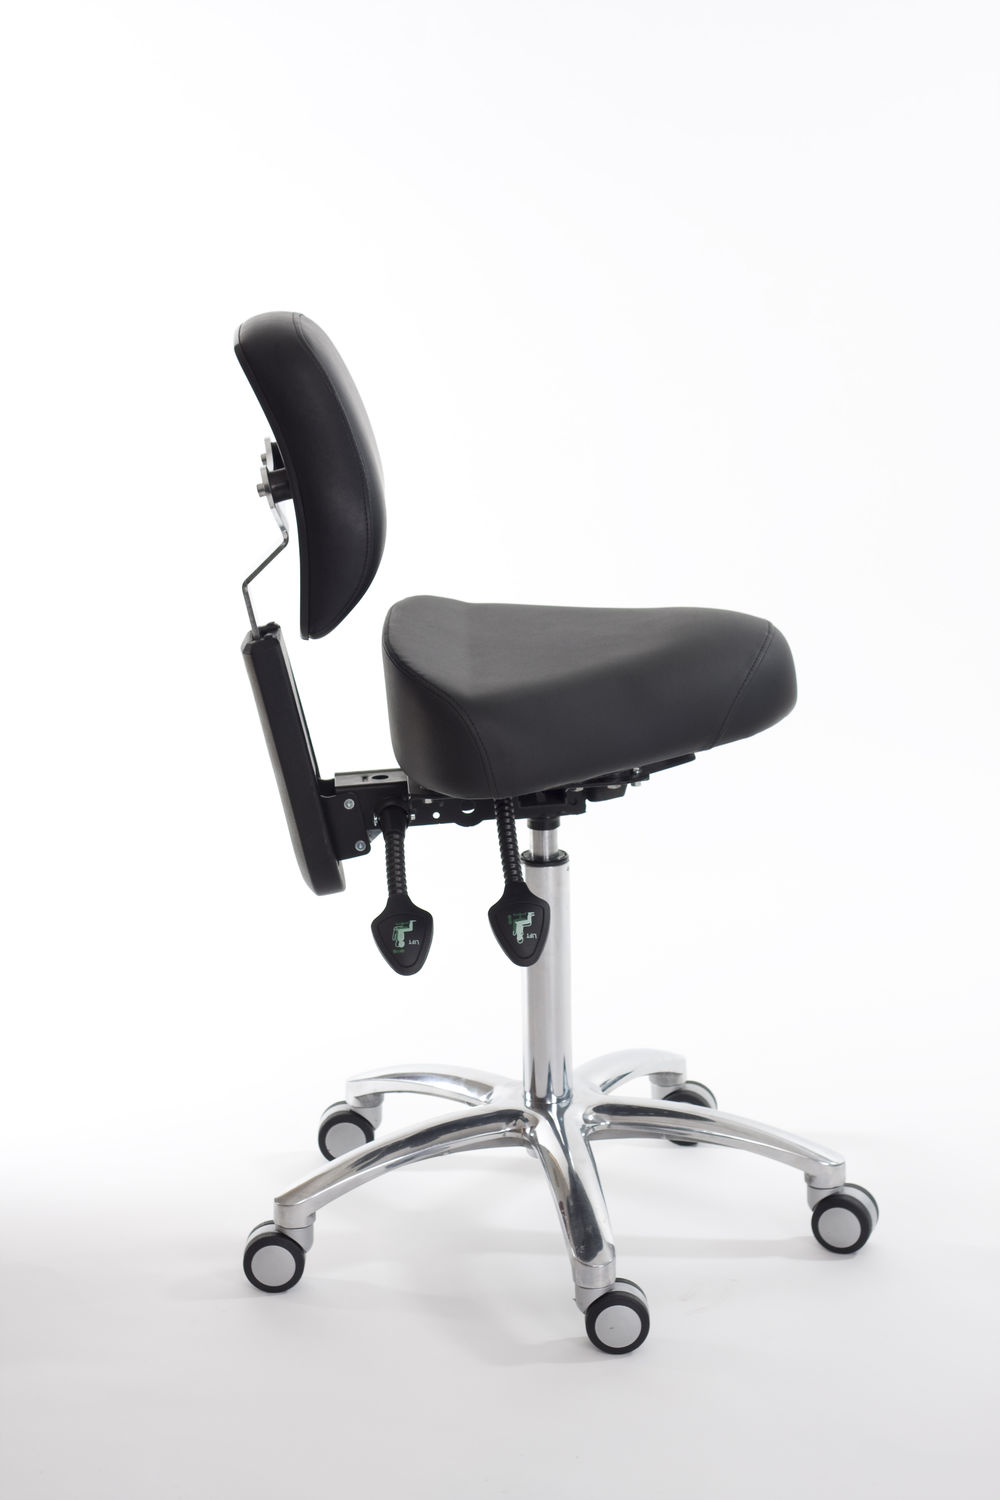 Doctoru0027s office stool / height-adjustable / with backrest / T seat ComfortMove Medical 4 ...  sc 1 st  MedicalExpo & Doctoru0027s office stool / height-adjustable / with backrest / T seat ... islam-shia.org